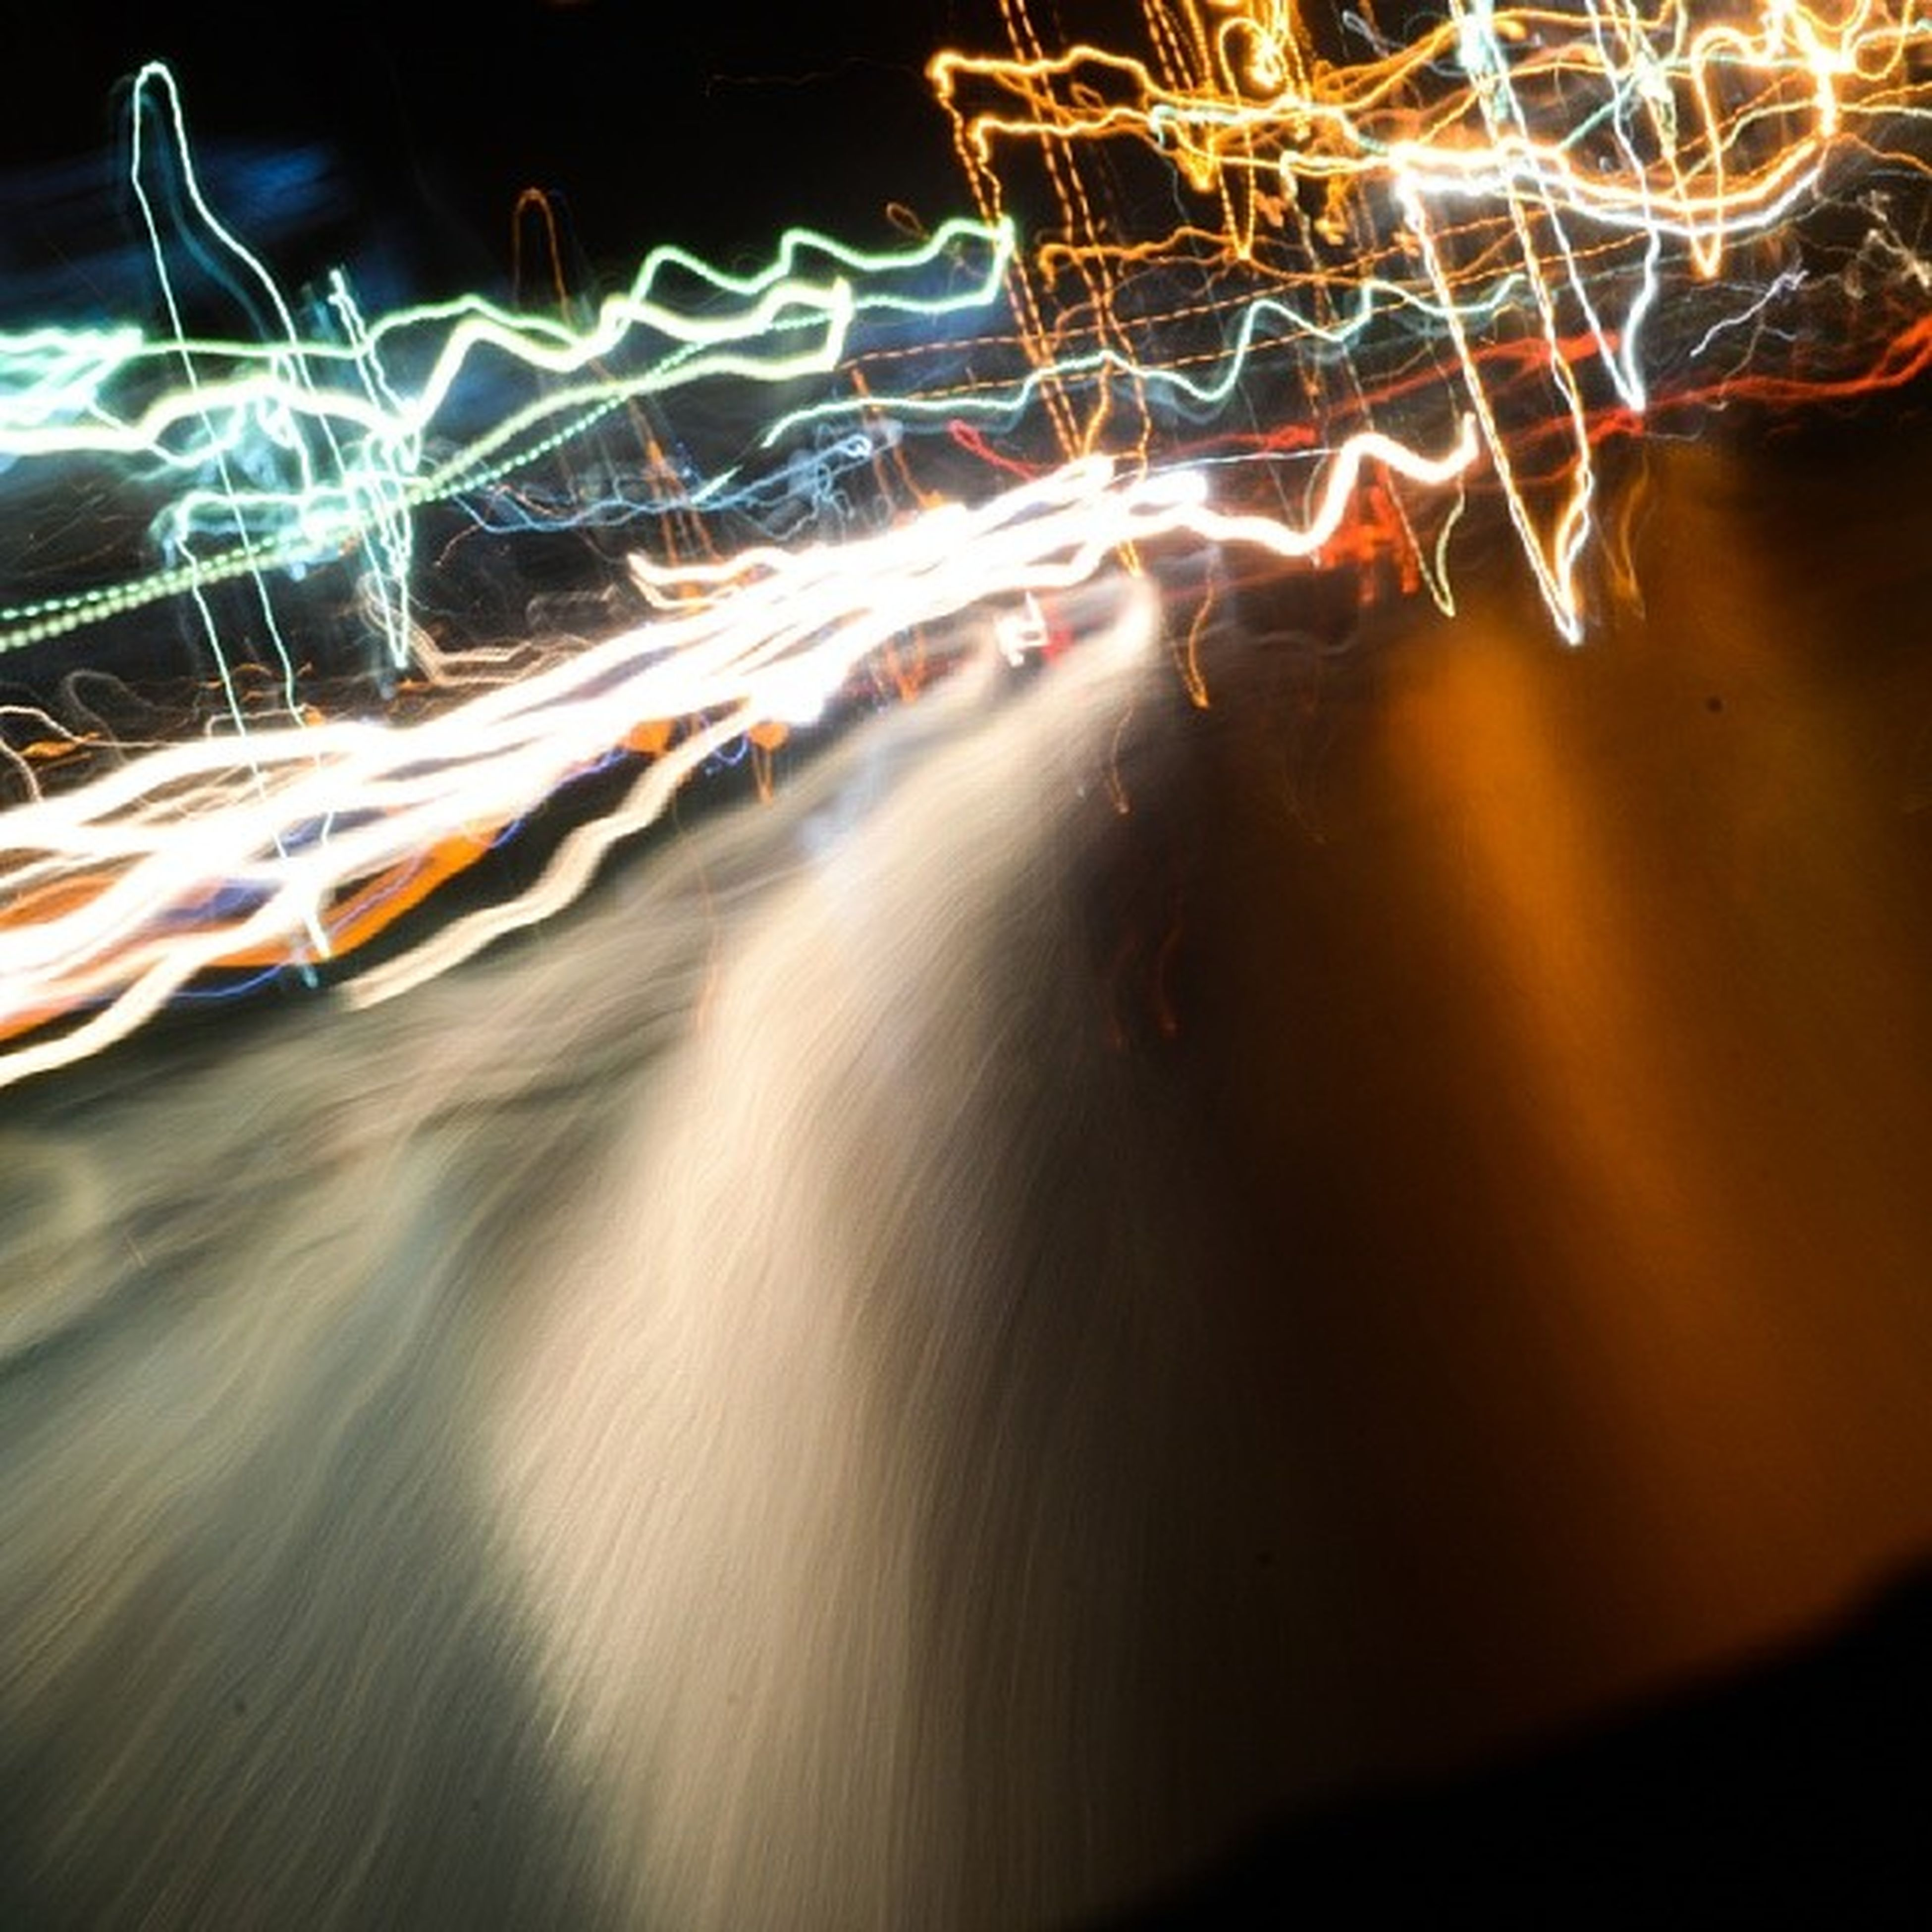 motion, long exposure, night, water, illuminated, blurred motion, speed, waterfront, light trail, splashing, glowing, rippled, animal themes, reflection, light painting, swimming, outdoors, abstract, no people, one animal